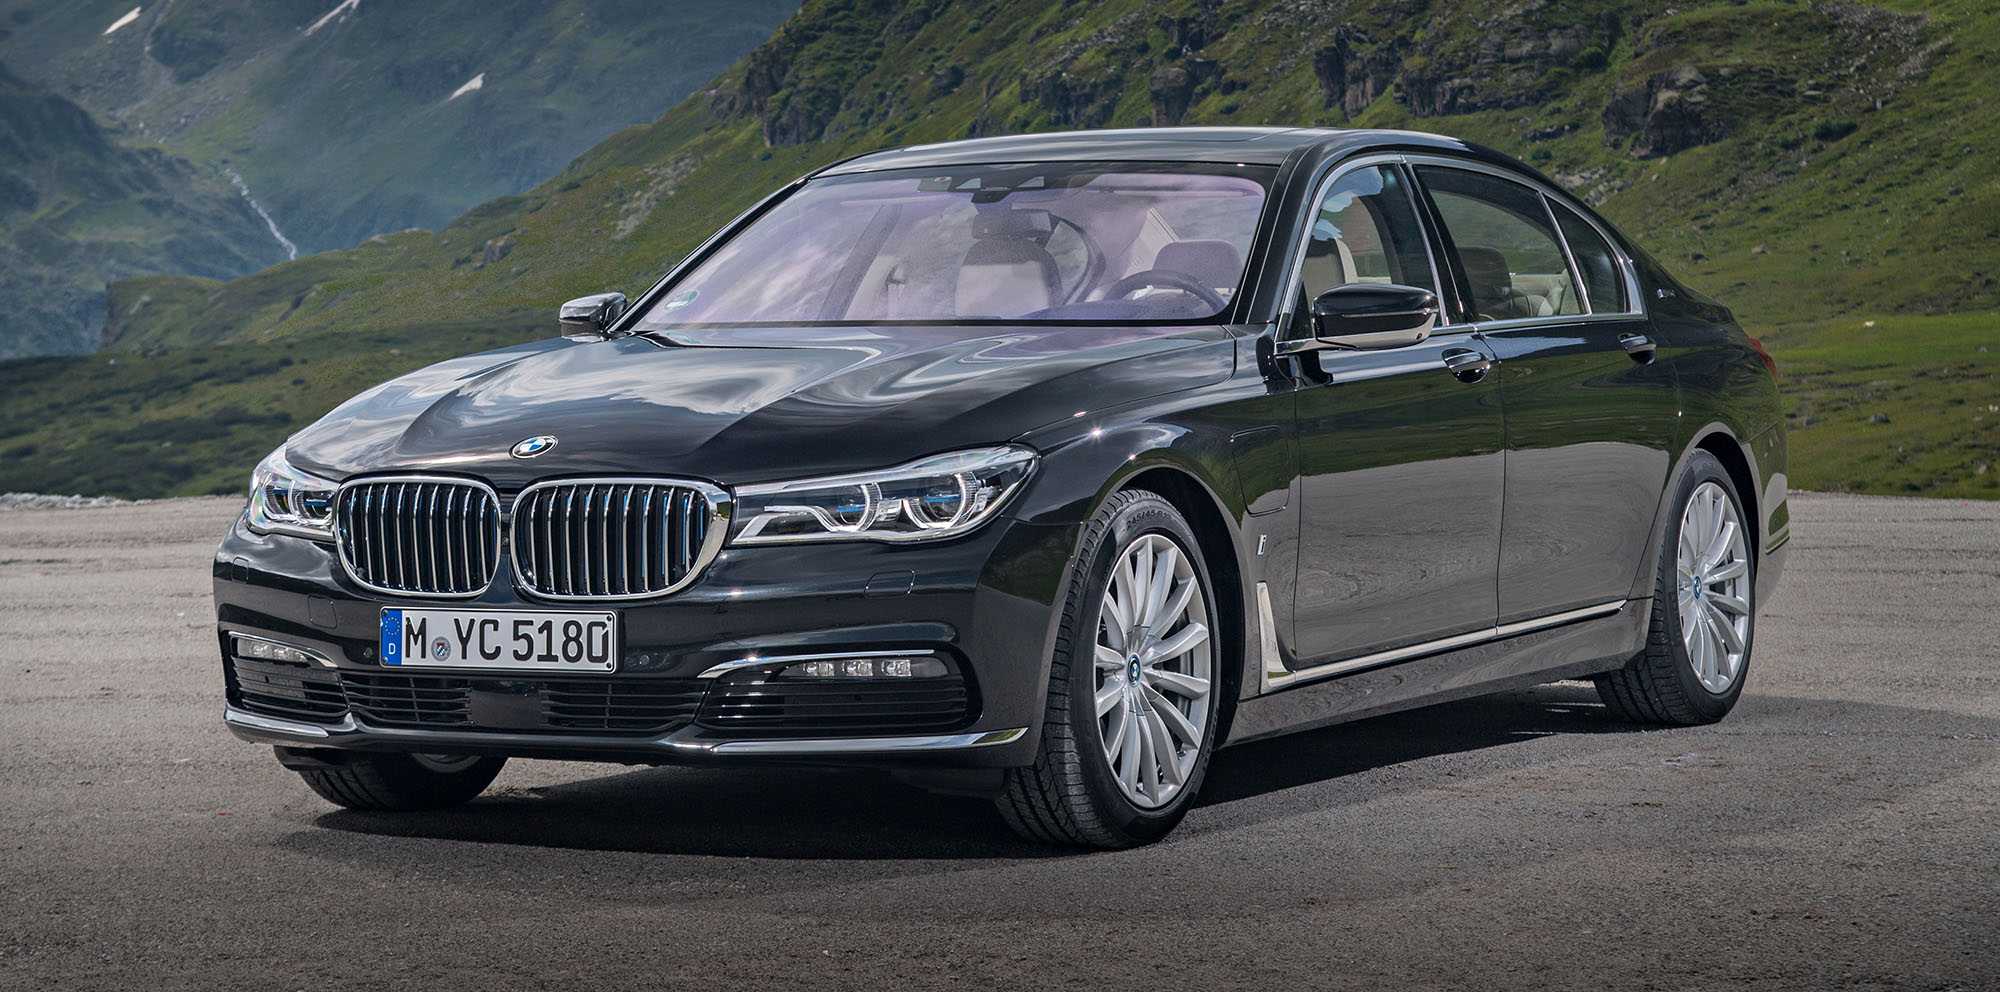 2017 Bmw 740e Iperformance Plug In Hybrid Detailed